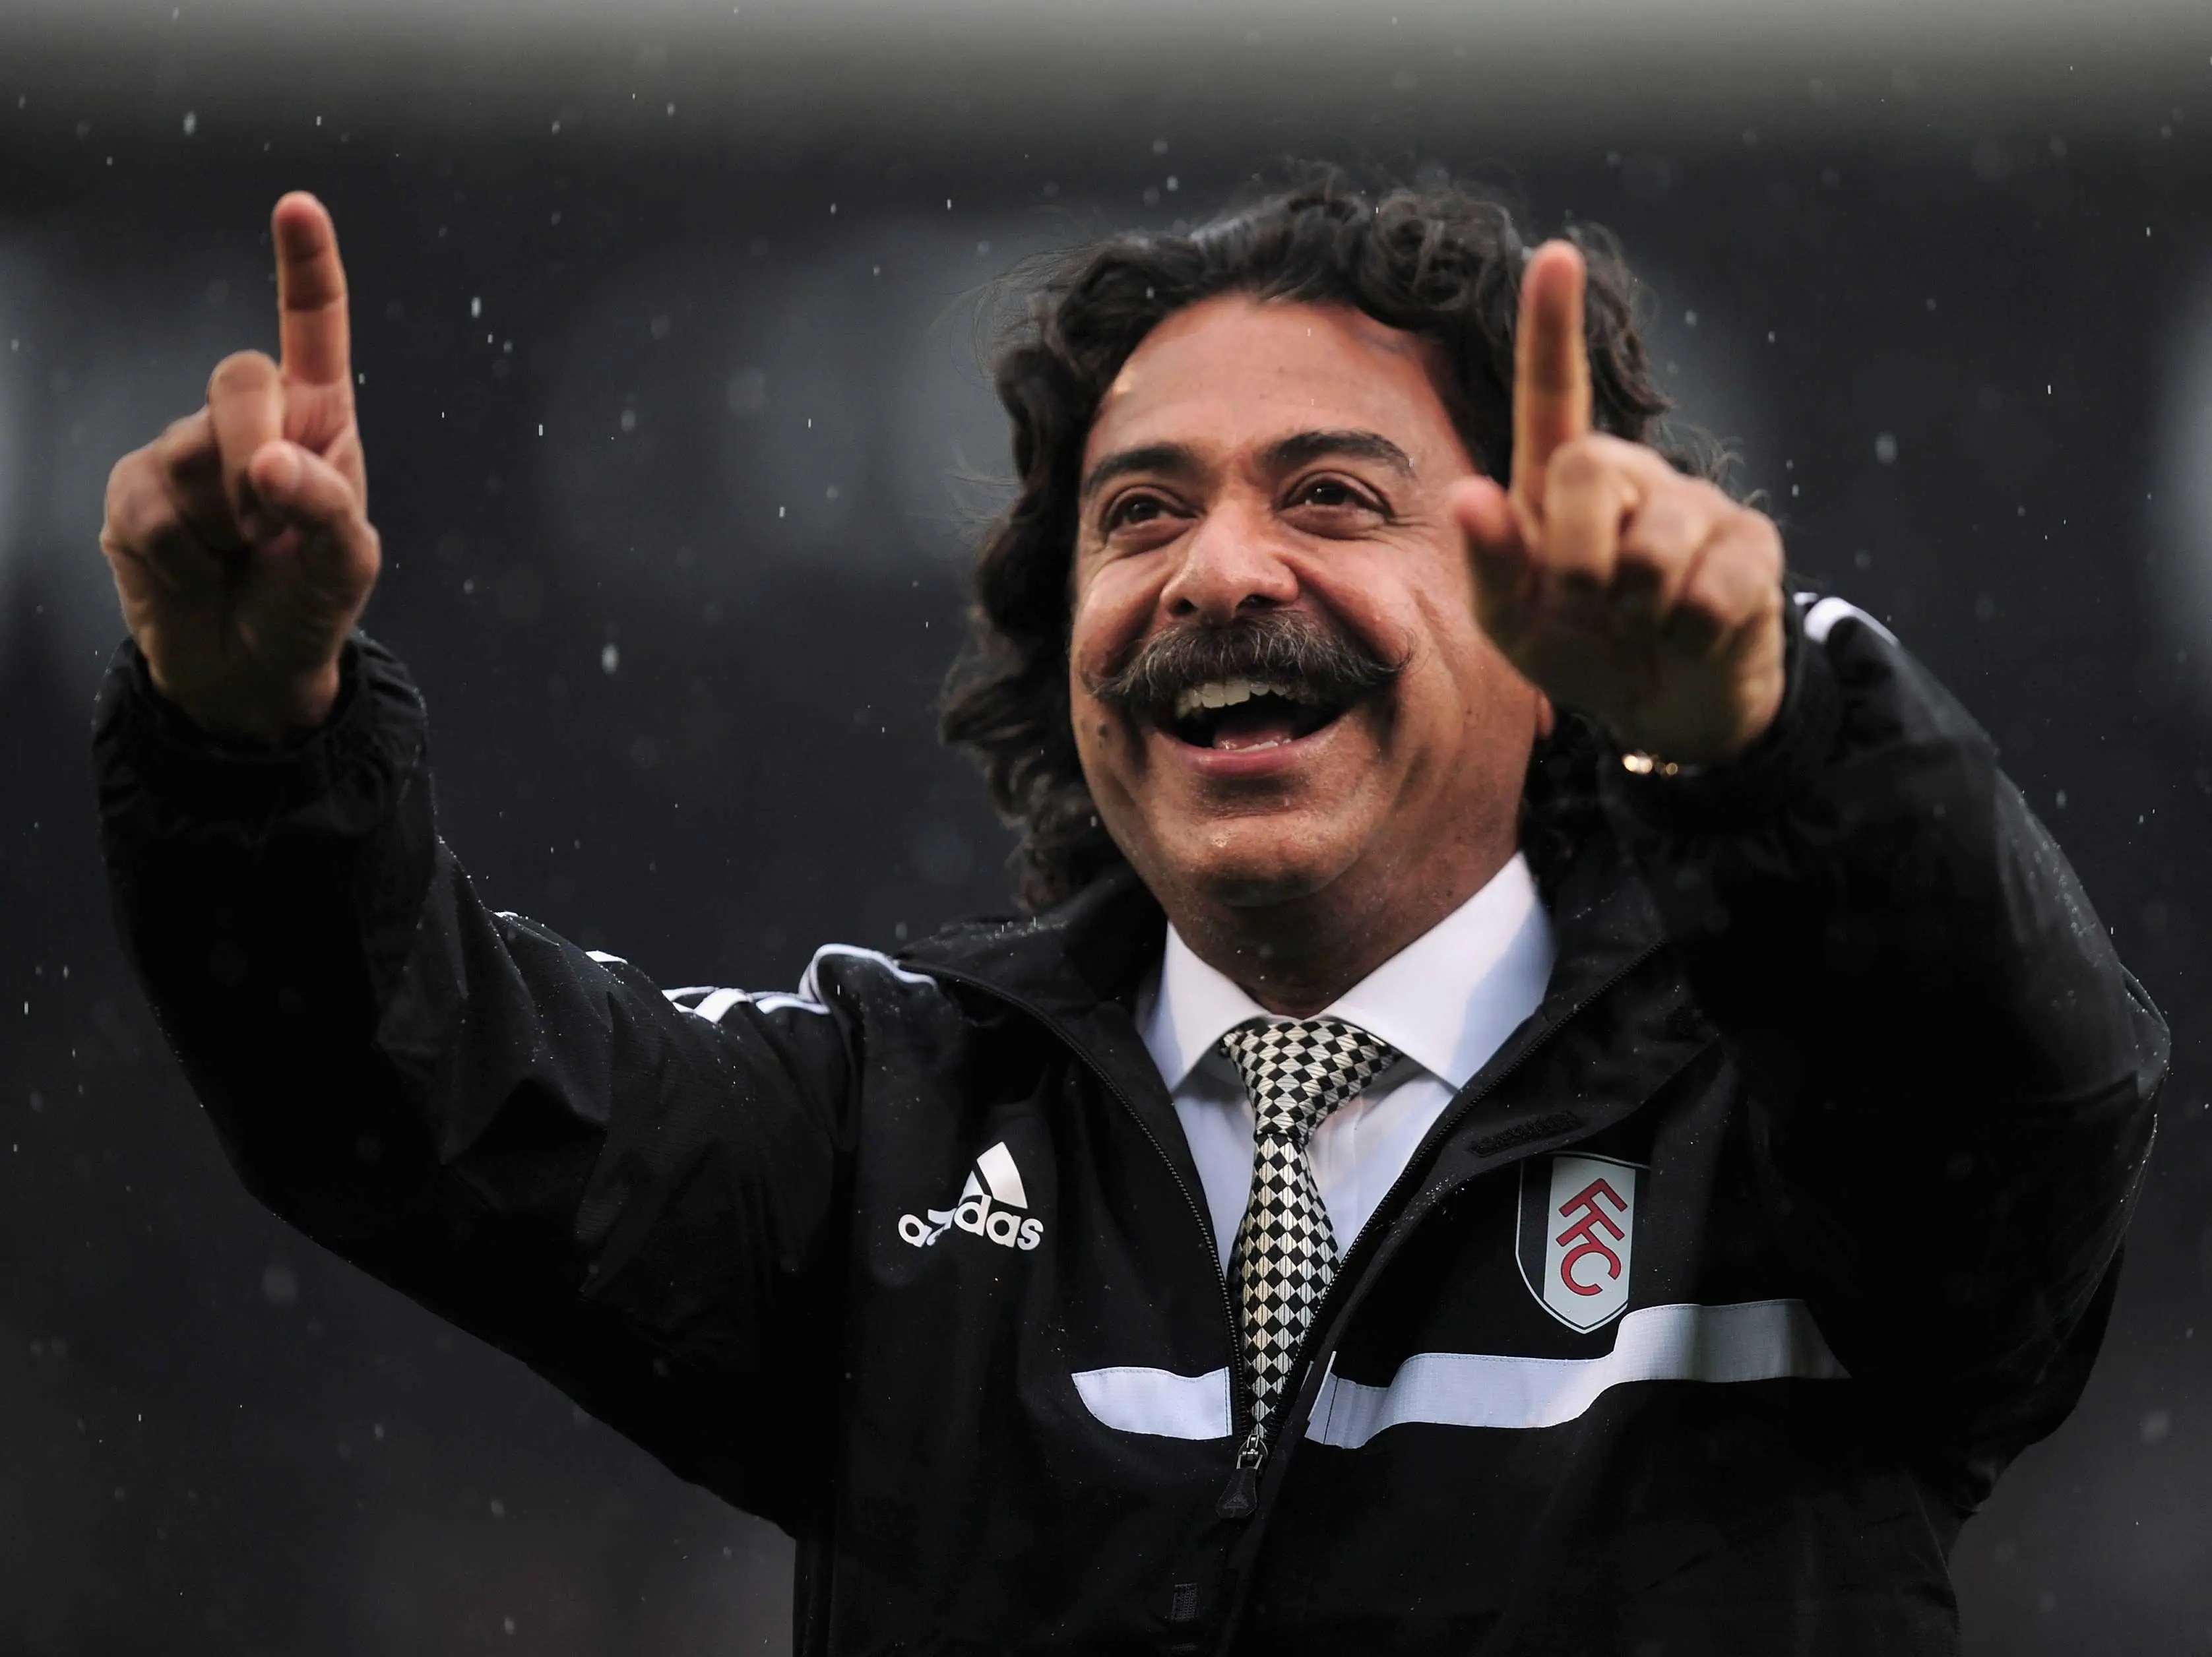 At one time, businessman Shahid Khan washed dishes for $1.20 an hour.